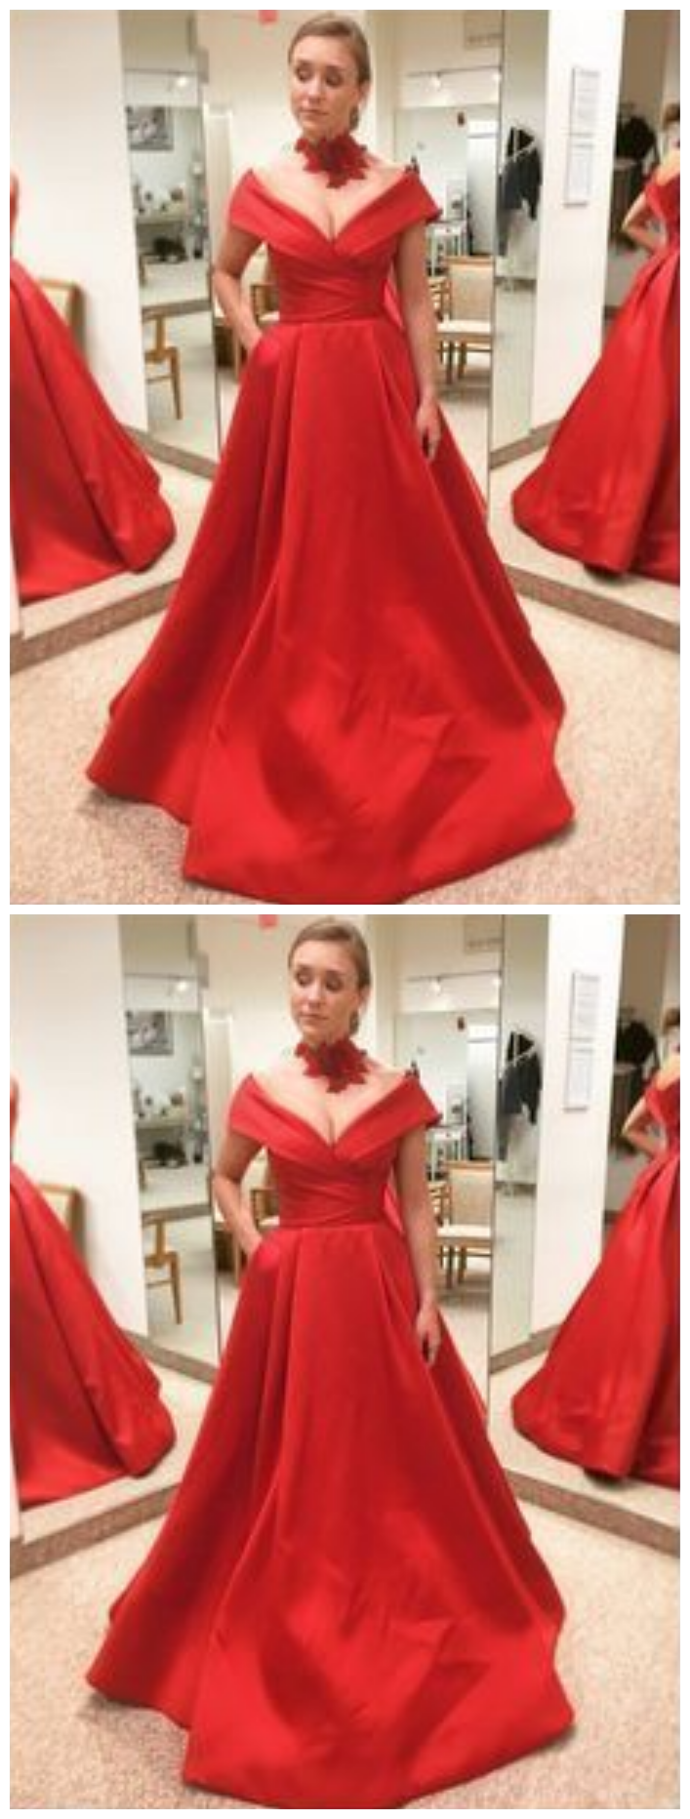 Prom Dress A-line Red Off-the-shoulder Simple dress | Red ...